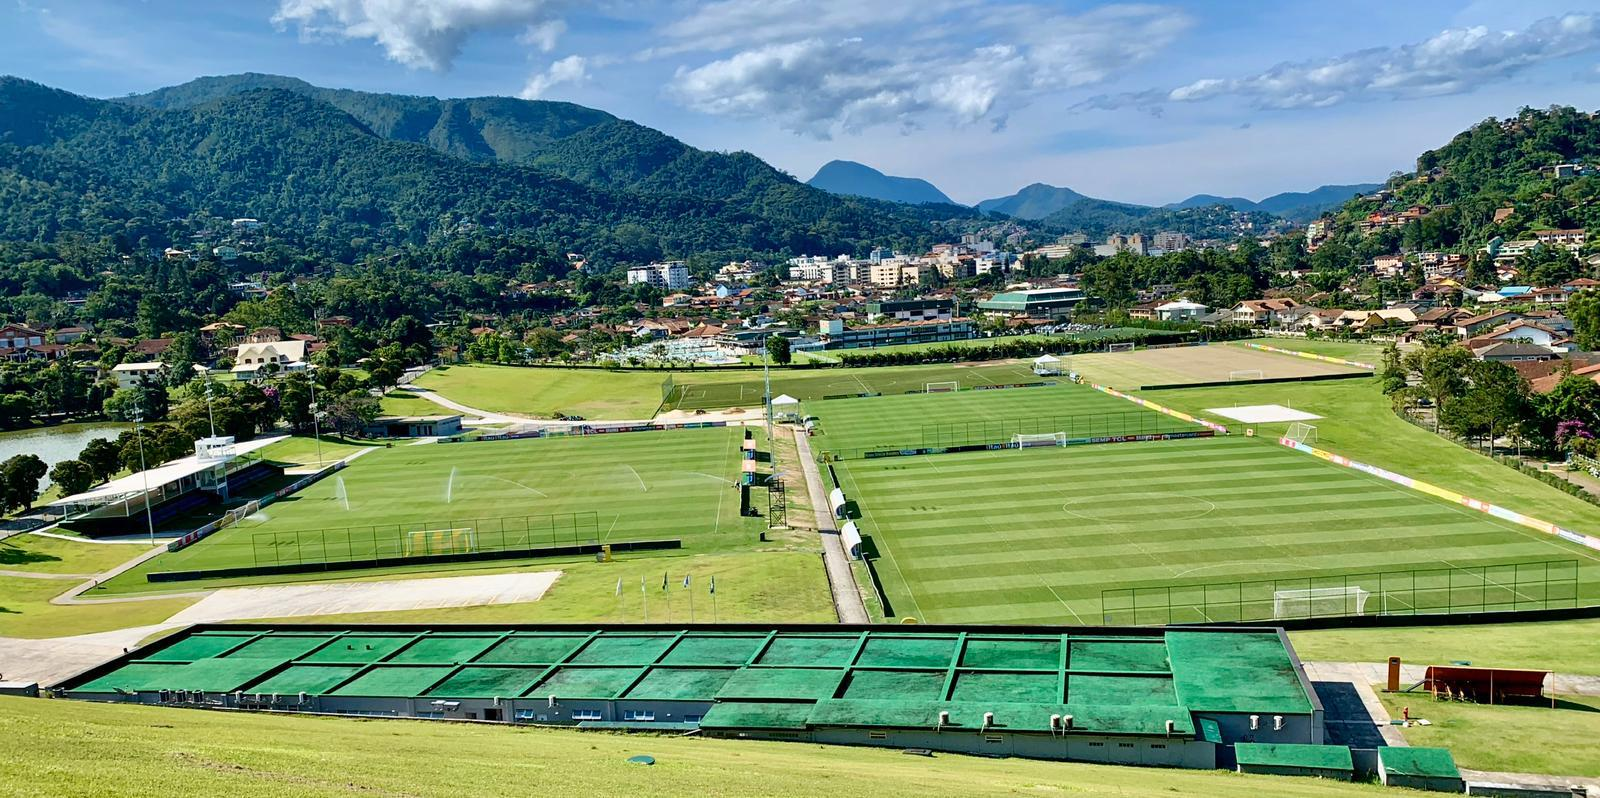 Granja Comary football complex in Brazil